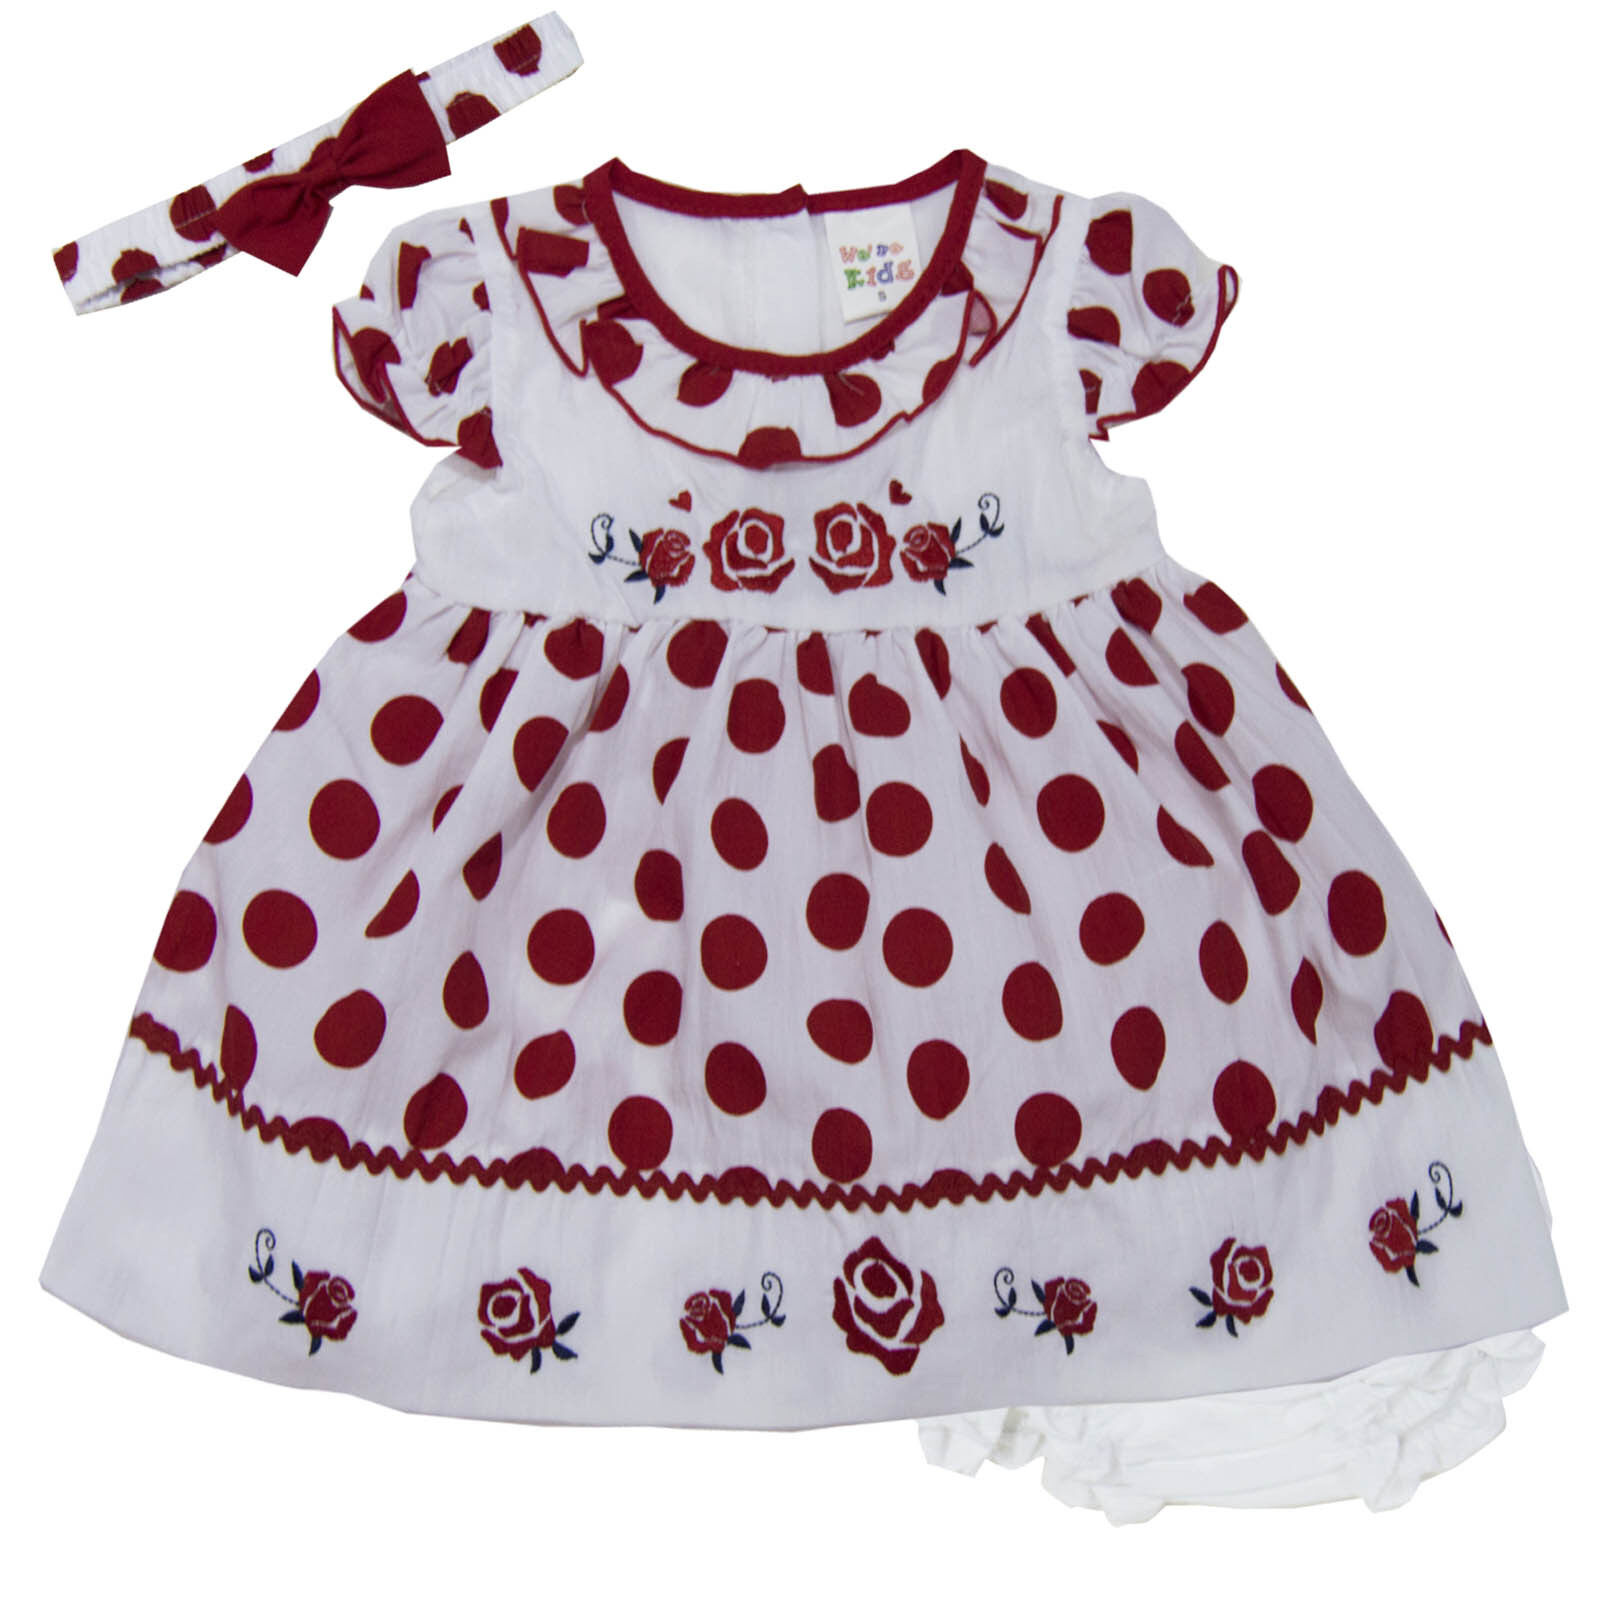 a8ab696af new newborn infant baby girl dress 3 piece set outfit size 3 6 9 12 ...